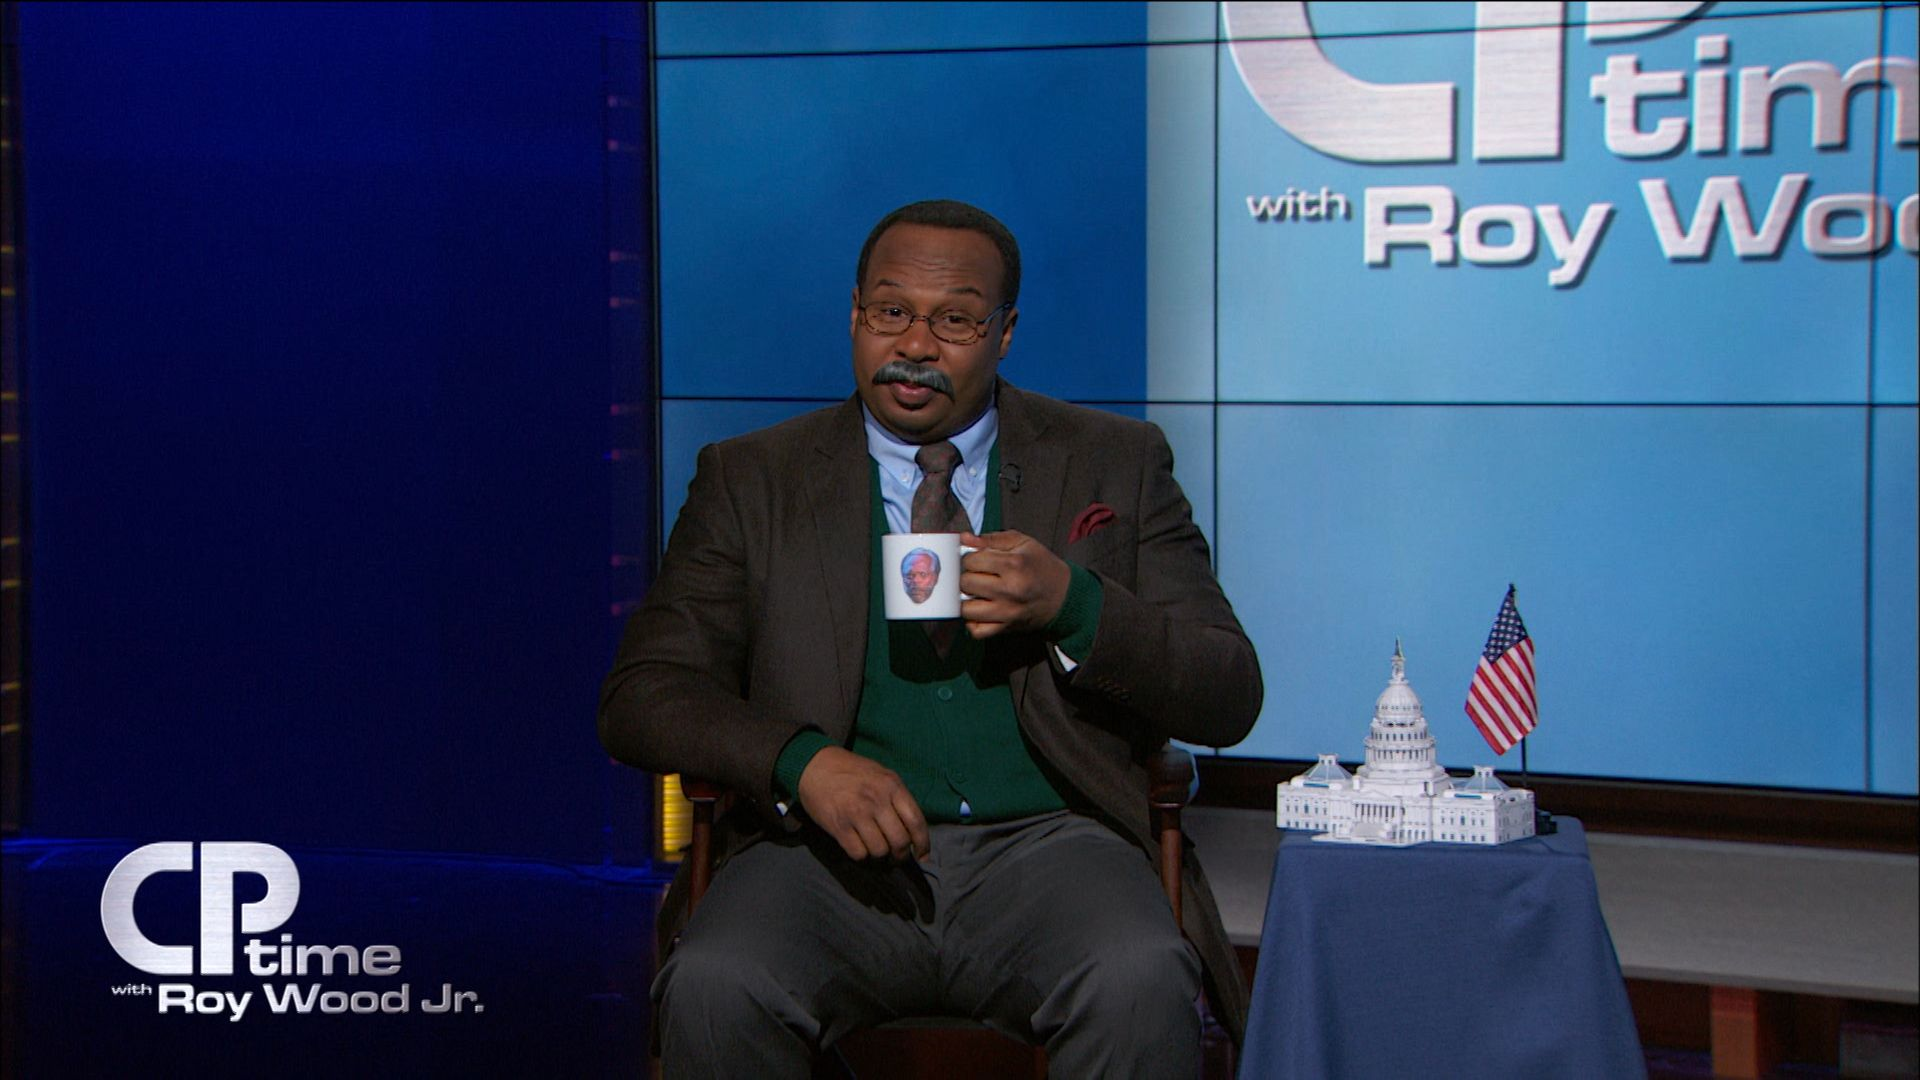 The daily show with trevor noah series comedy central official cp time unsung black heroes of politics 340roy wood jr gets to know black politicians like herman cain alan keyes and marion barry ccuart Gallery